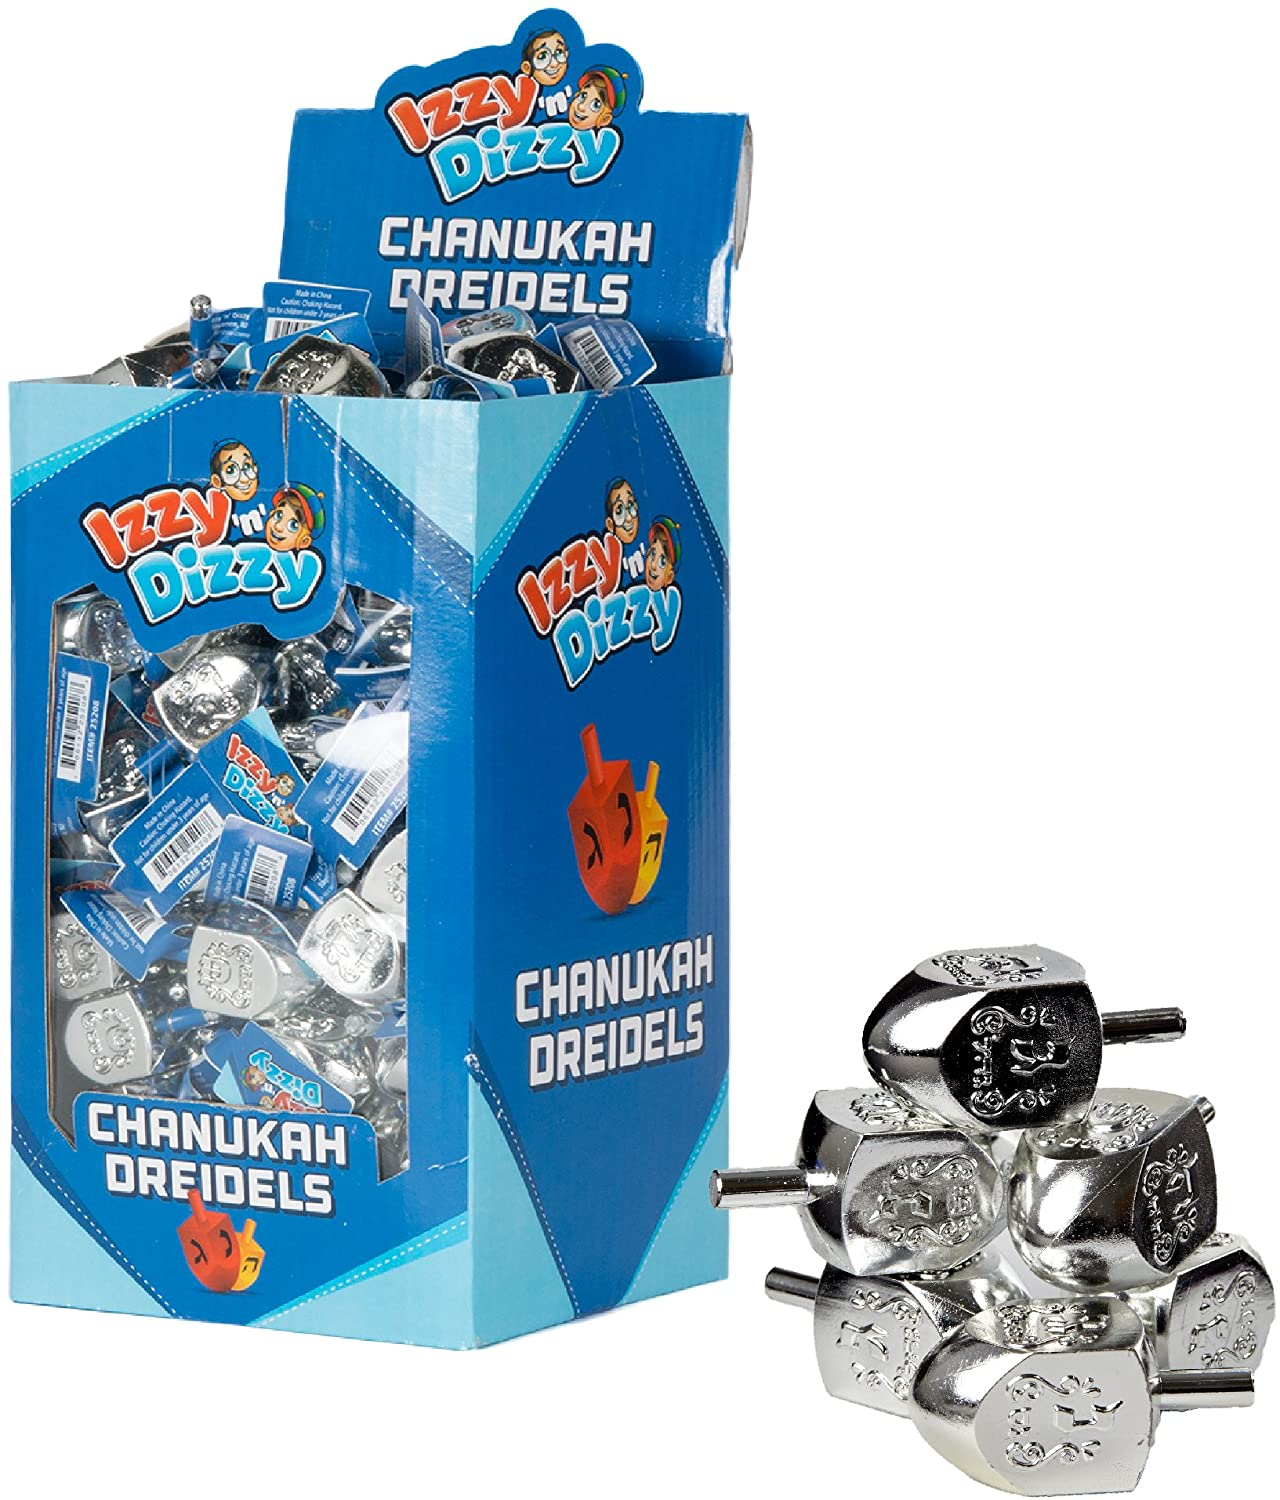 Izzy 'n' Dizzy 100 Small Dreidels - Silver - Classic Chanukah Spinning Draidel Game and Prize - Bulk Value Pack Price for 4